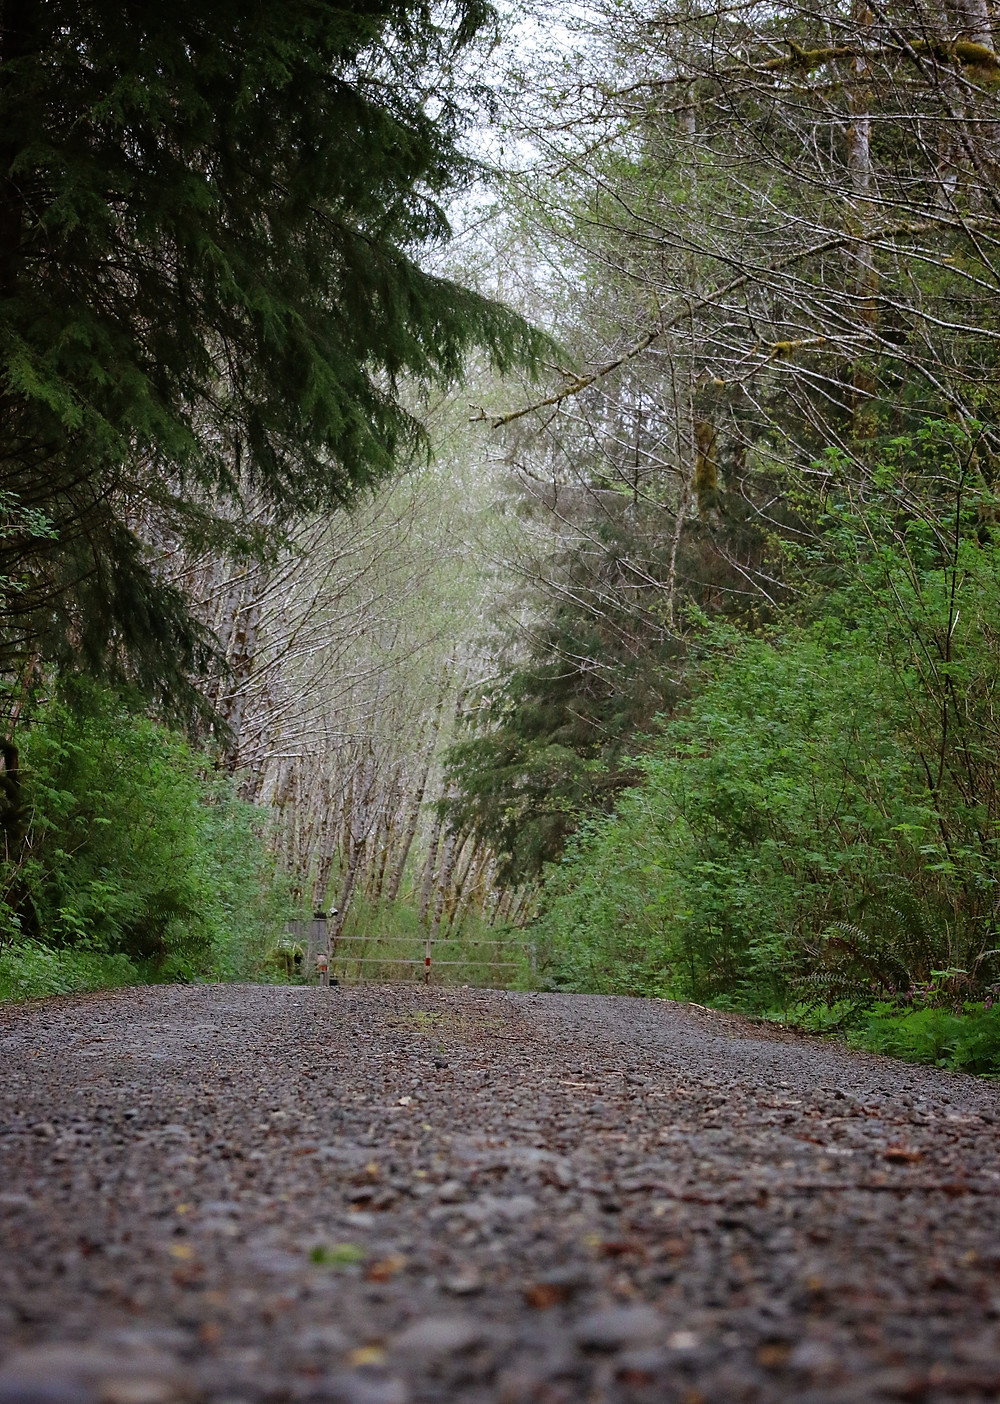 Olympic Peninsula Washington, 2015.